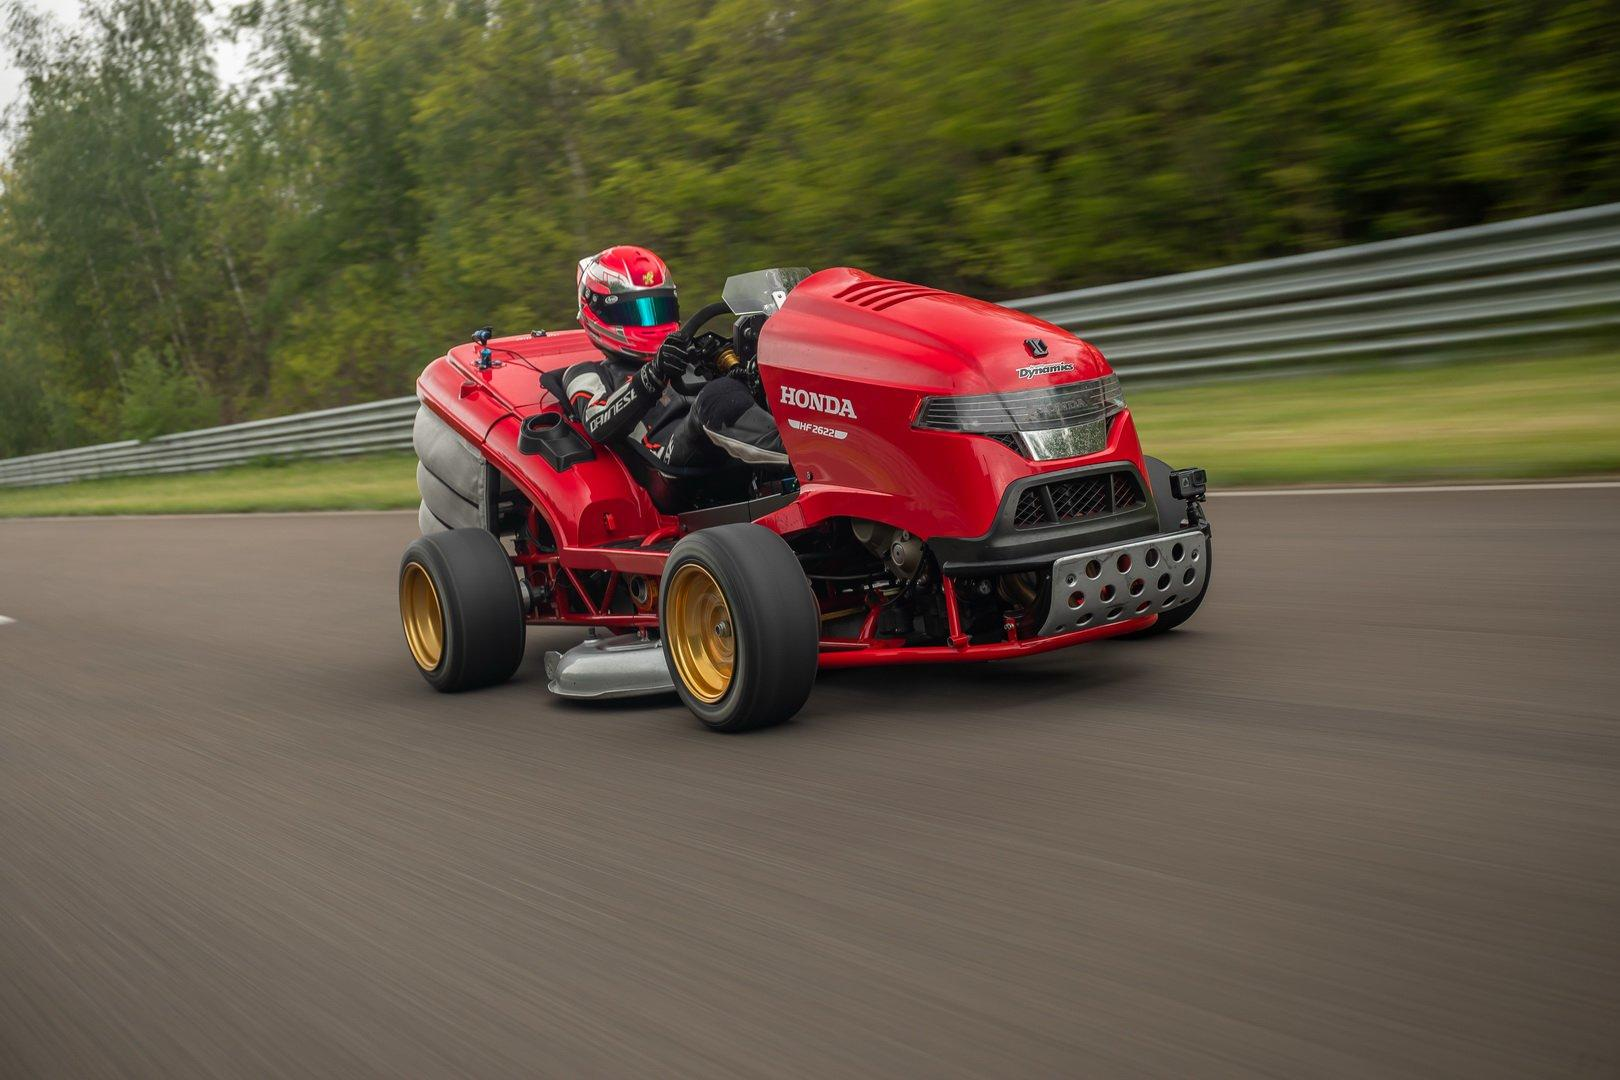 Honda Mean Mower V2 - Honda Mean Mower V2